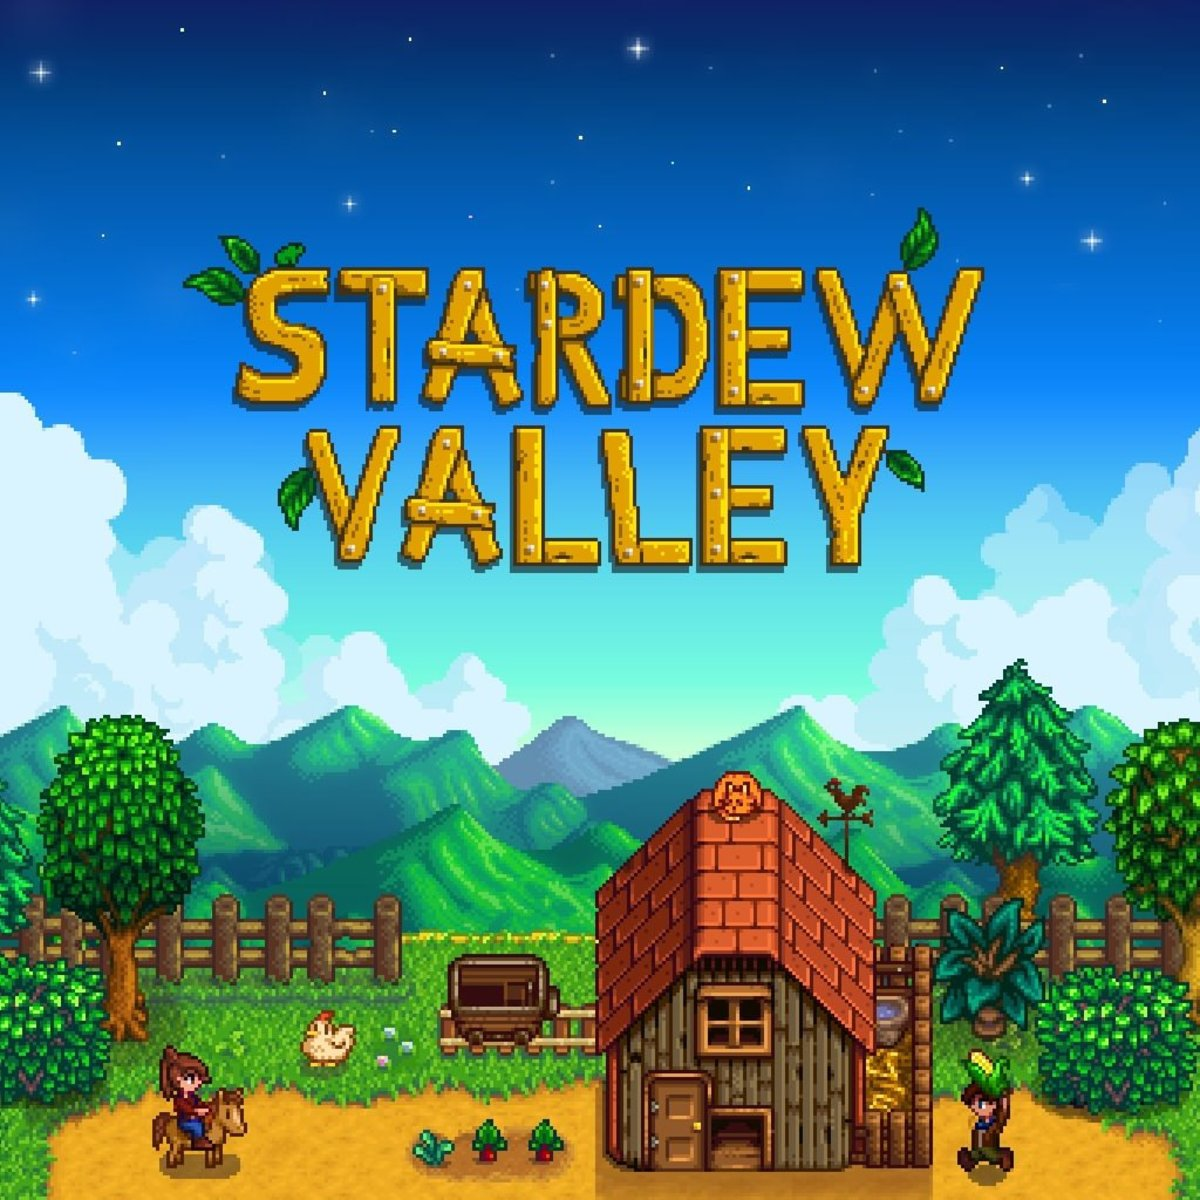 Redeem full game of Stardew Valley. A $7.99 value.